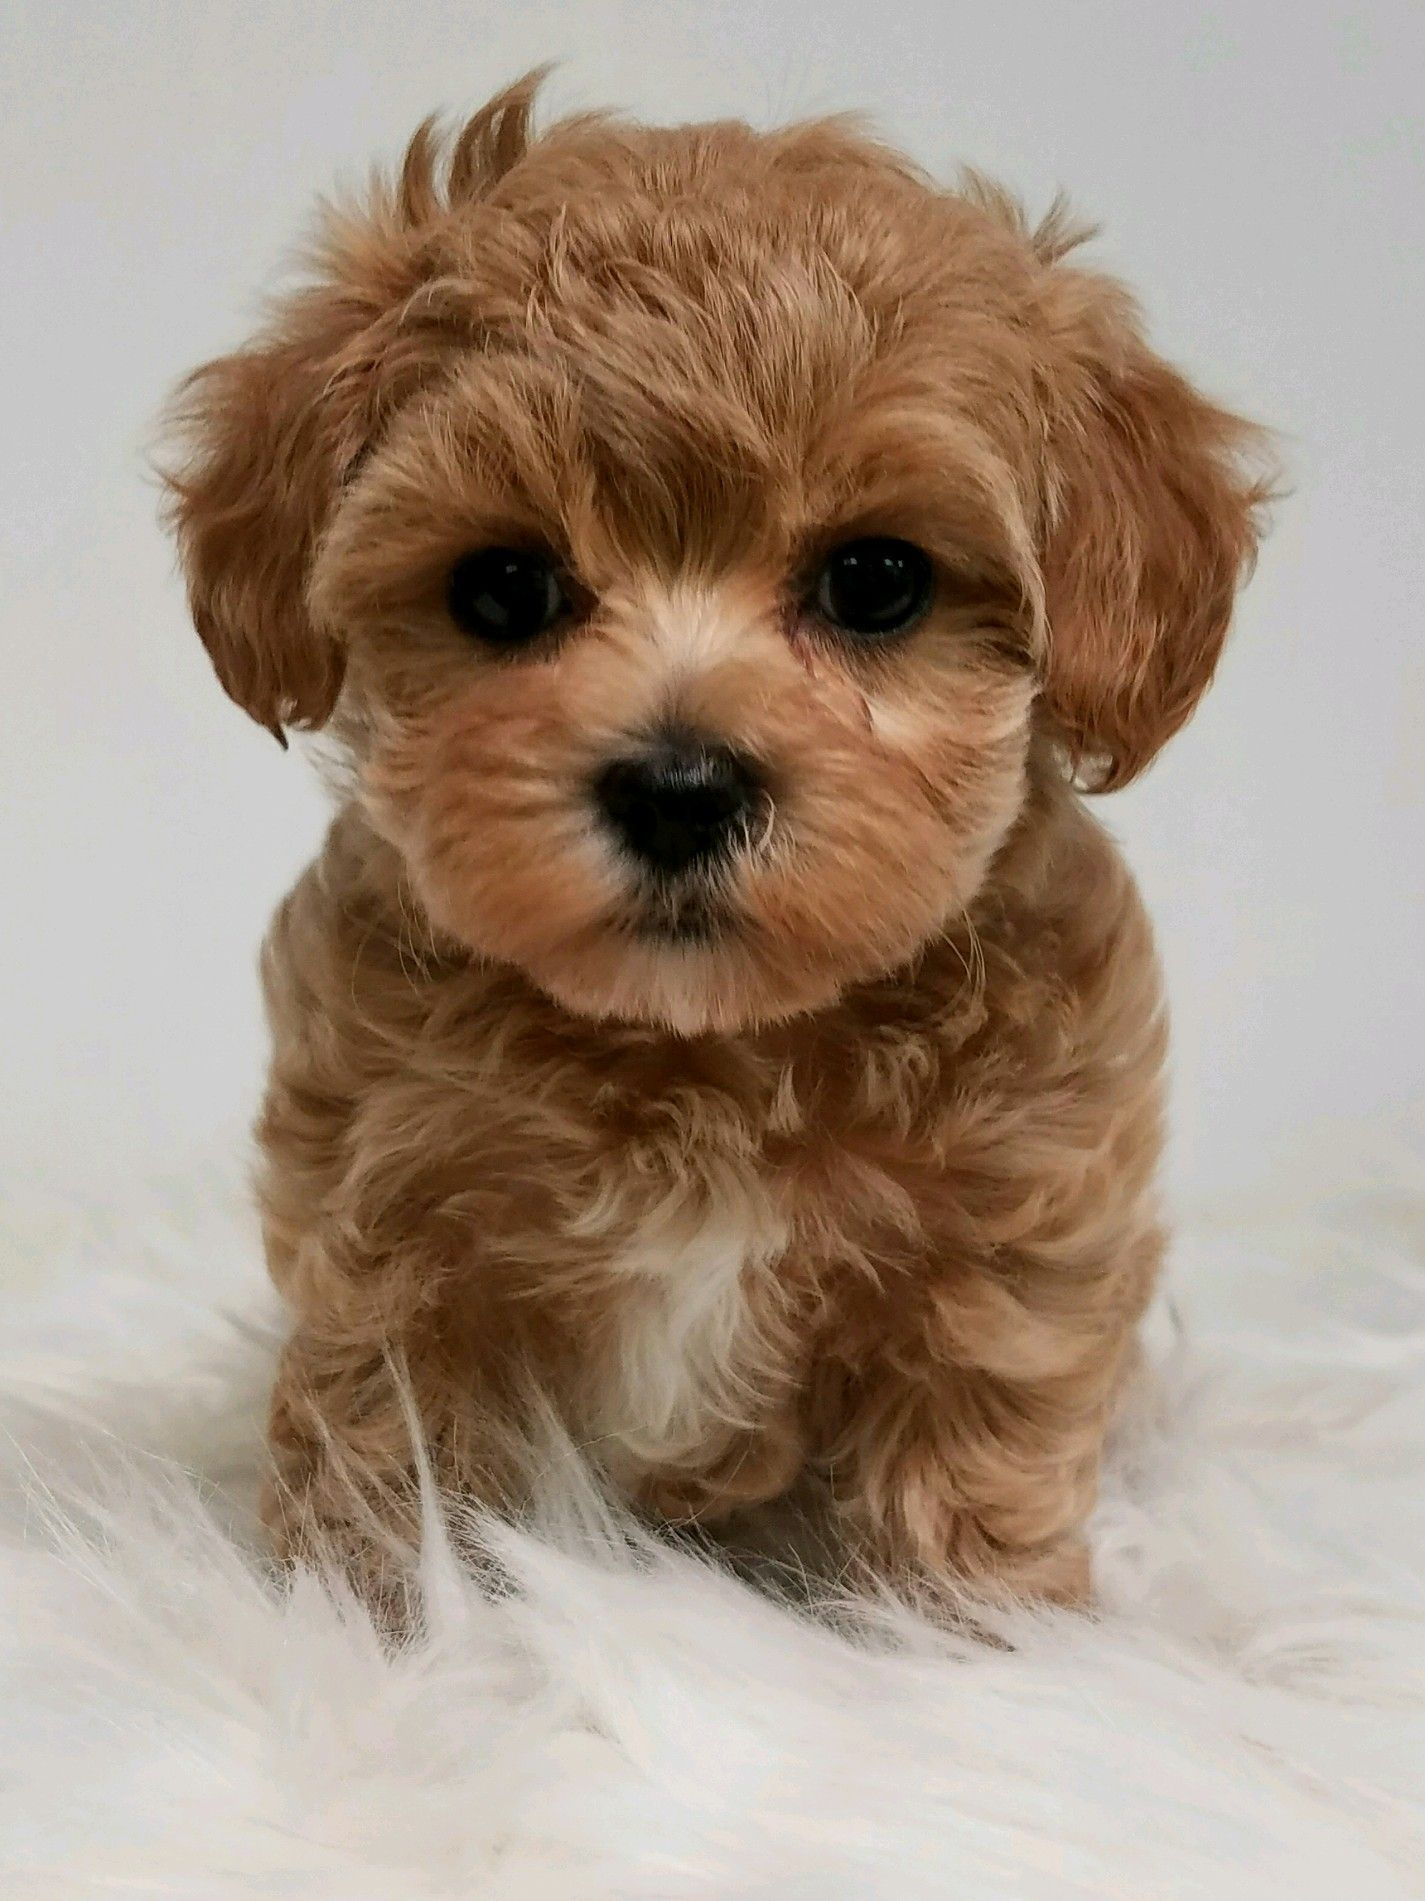 Designer And Mix Puppies Morkies Maltipoos Red Maltipoos Yorkshire Terrier Shih Tzu Havanese Toy And Teacup Maltipoo Puppy Yorkie Poo Puppies Yorkie Poo